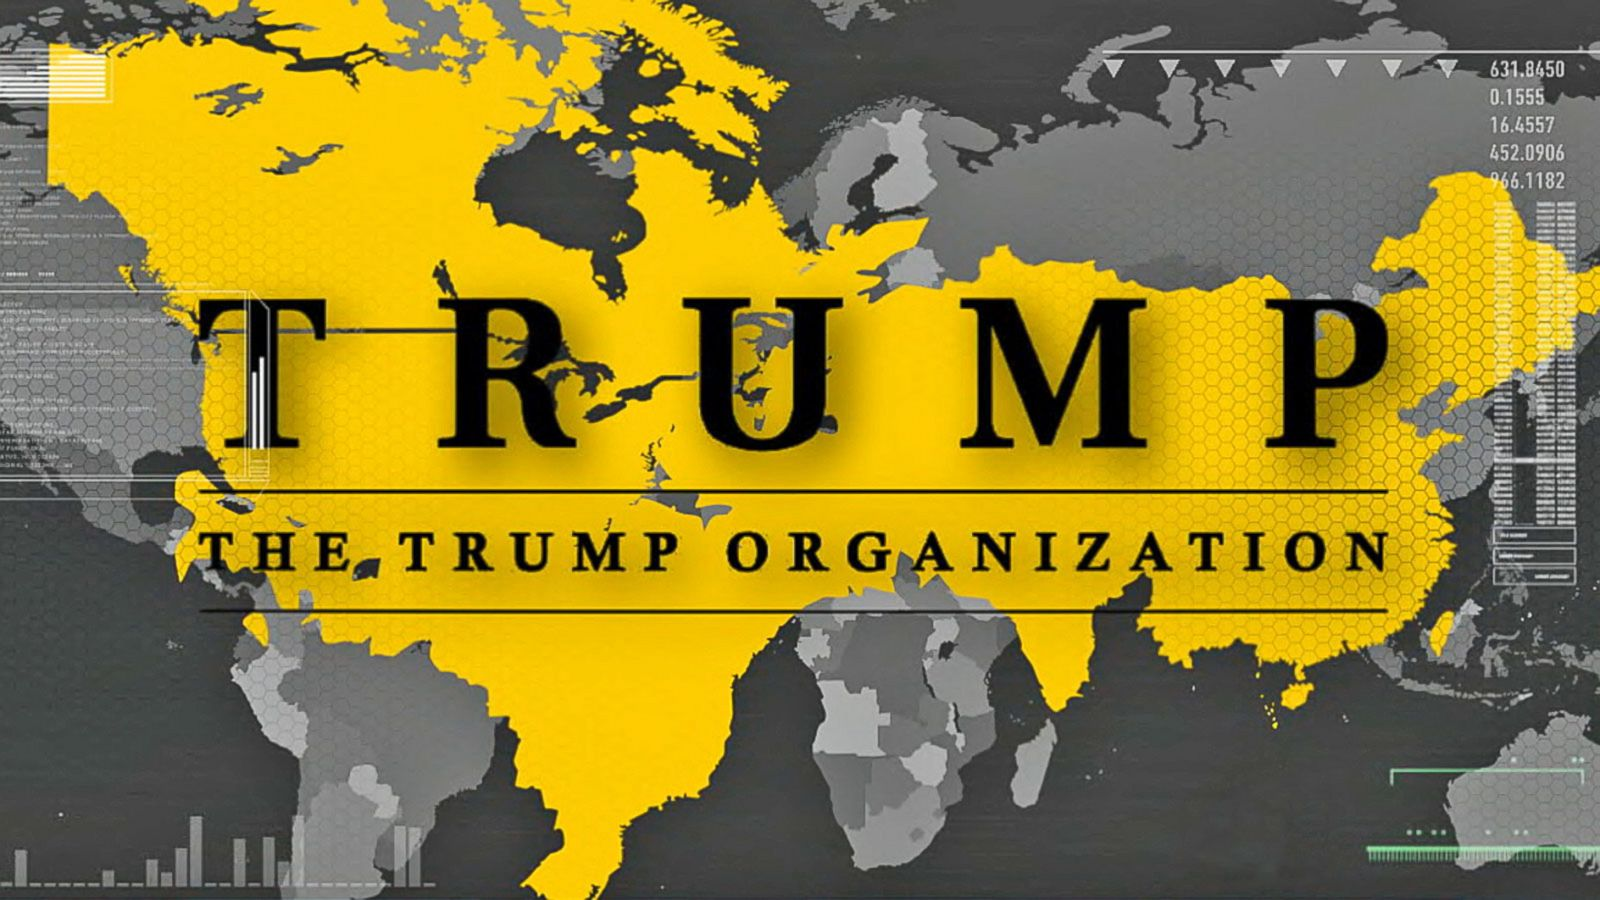 VIDEO: Where Trump Critics See Global Conflicts, His Partners See Golden Opportunities